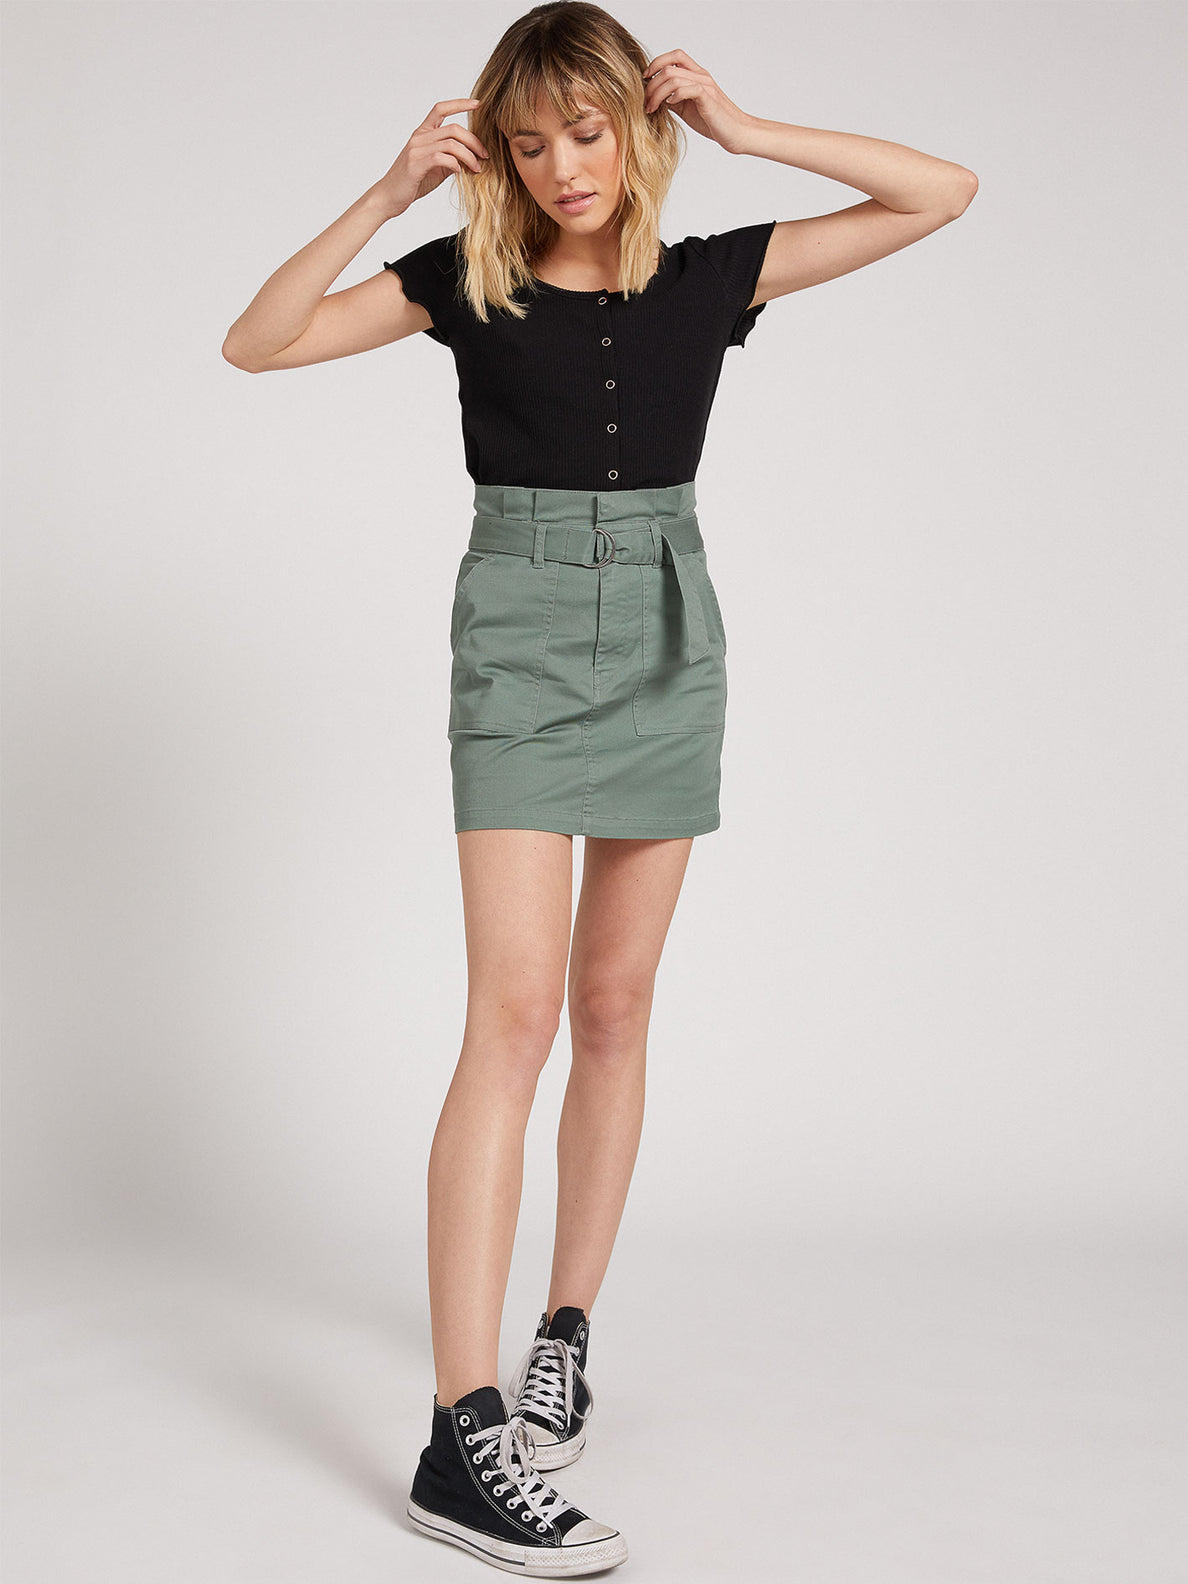 Frochickie Skirt - Forest Green (B1412000_FGR) [19]